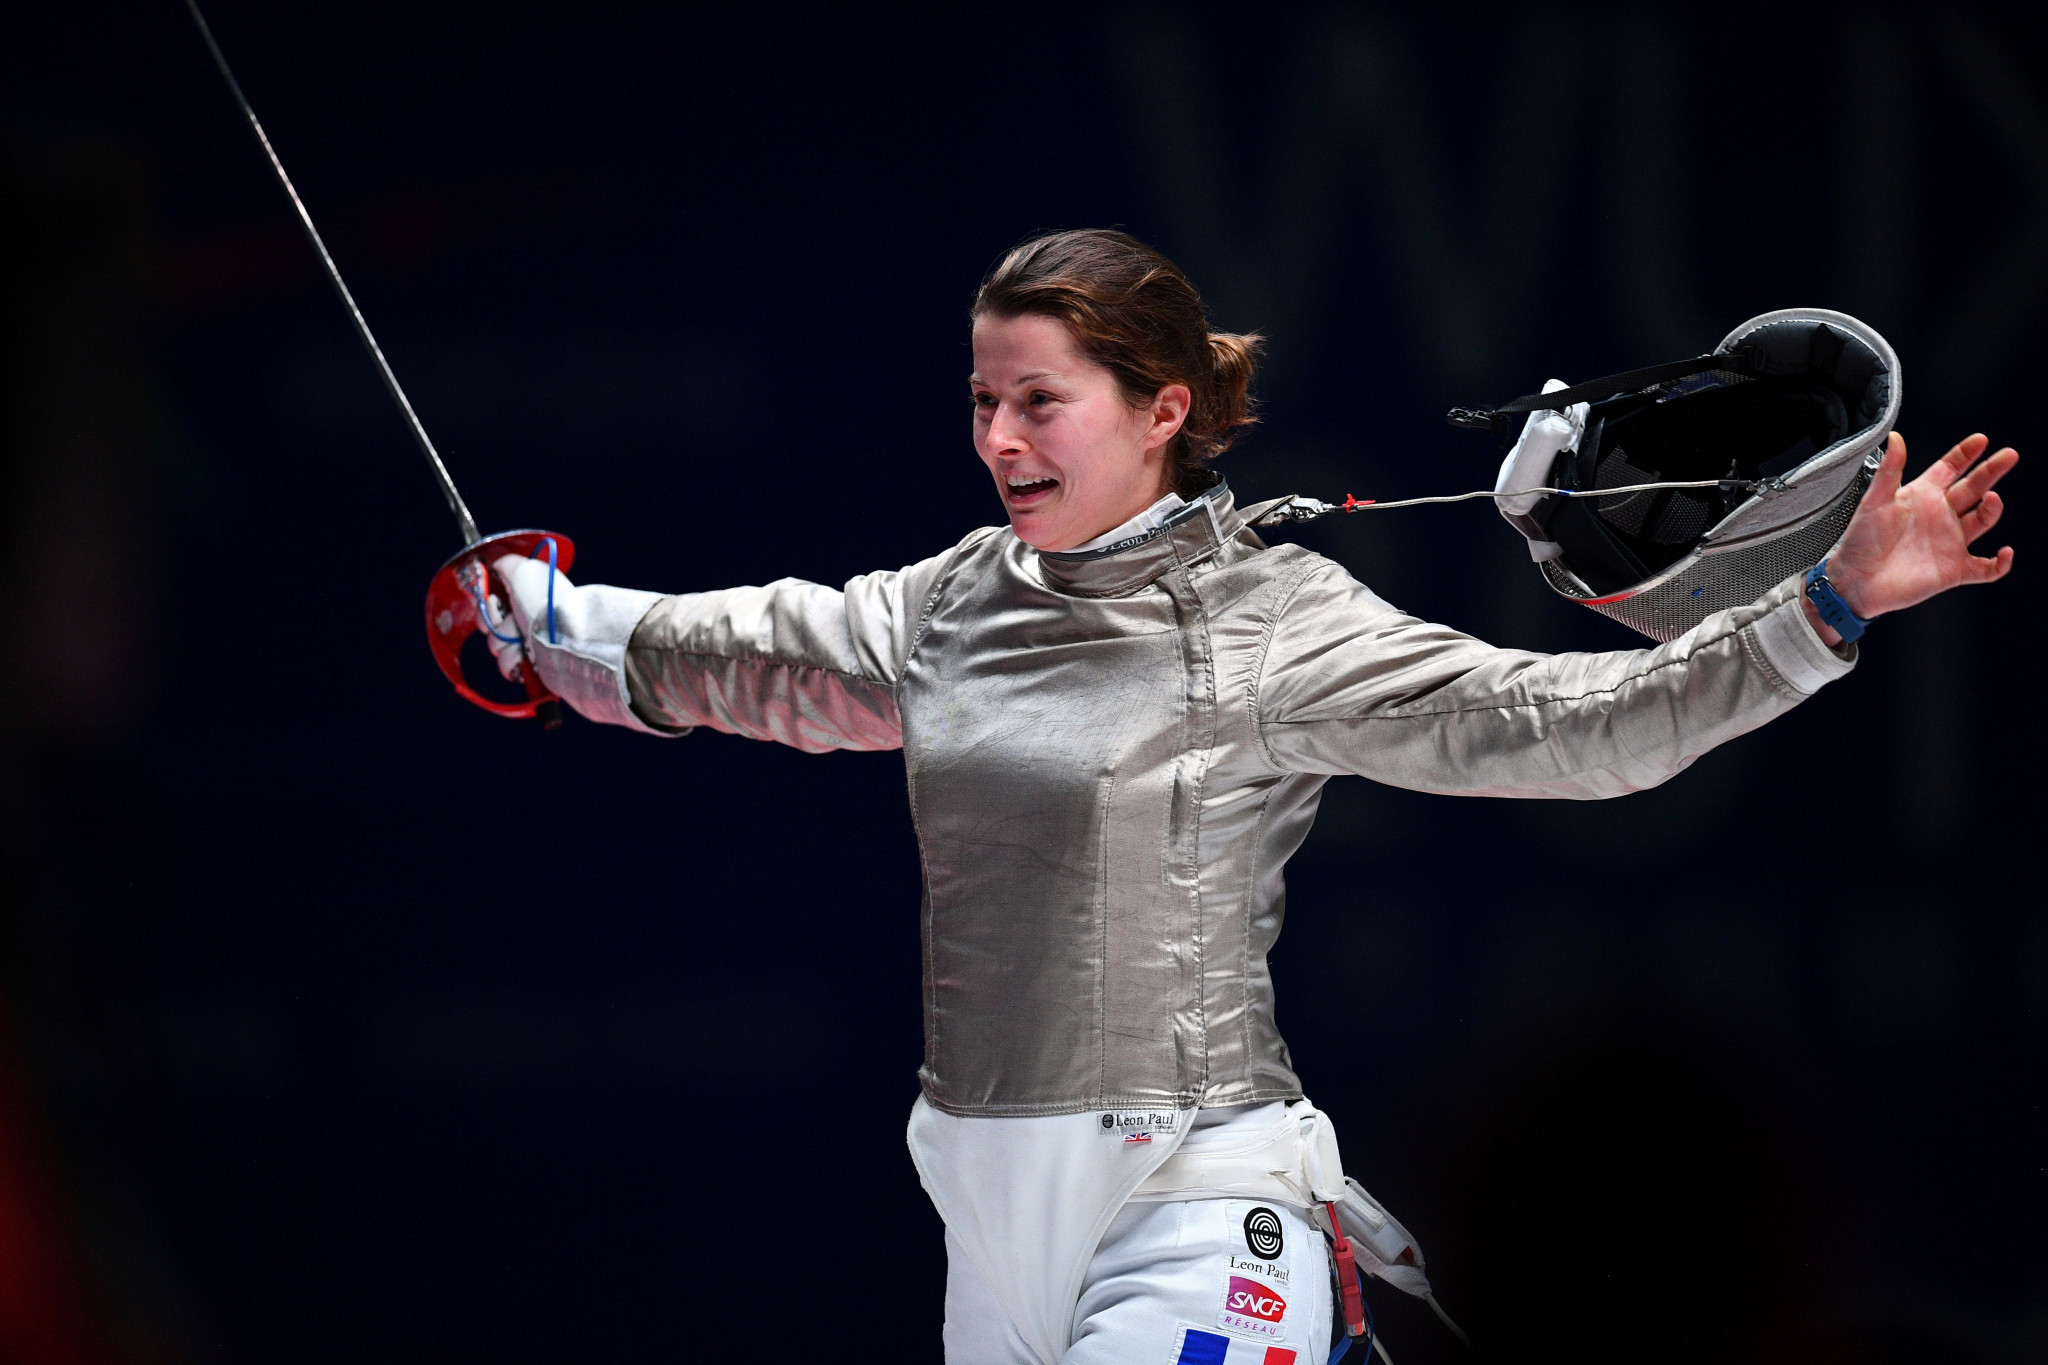 France's Cécilia Berder will be vying for top honours at the FIE Women's Sabre World Cup in Sint-Niklaas in Belgium ©Getty Images